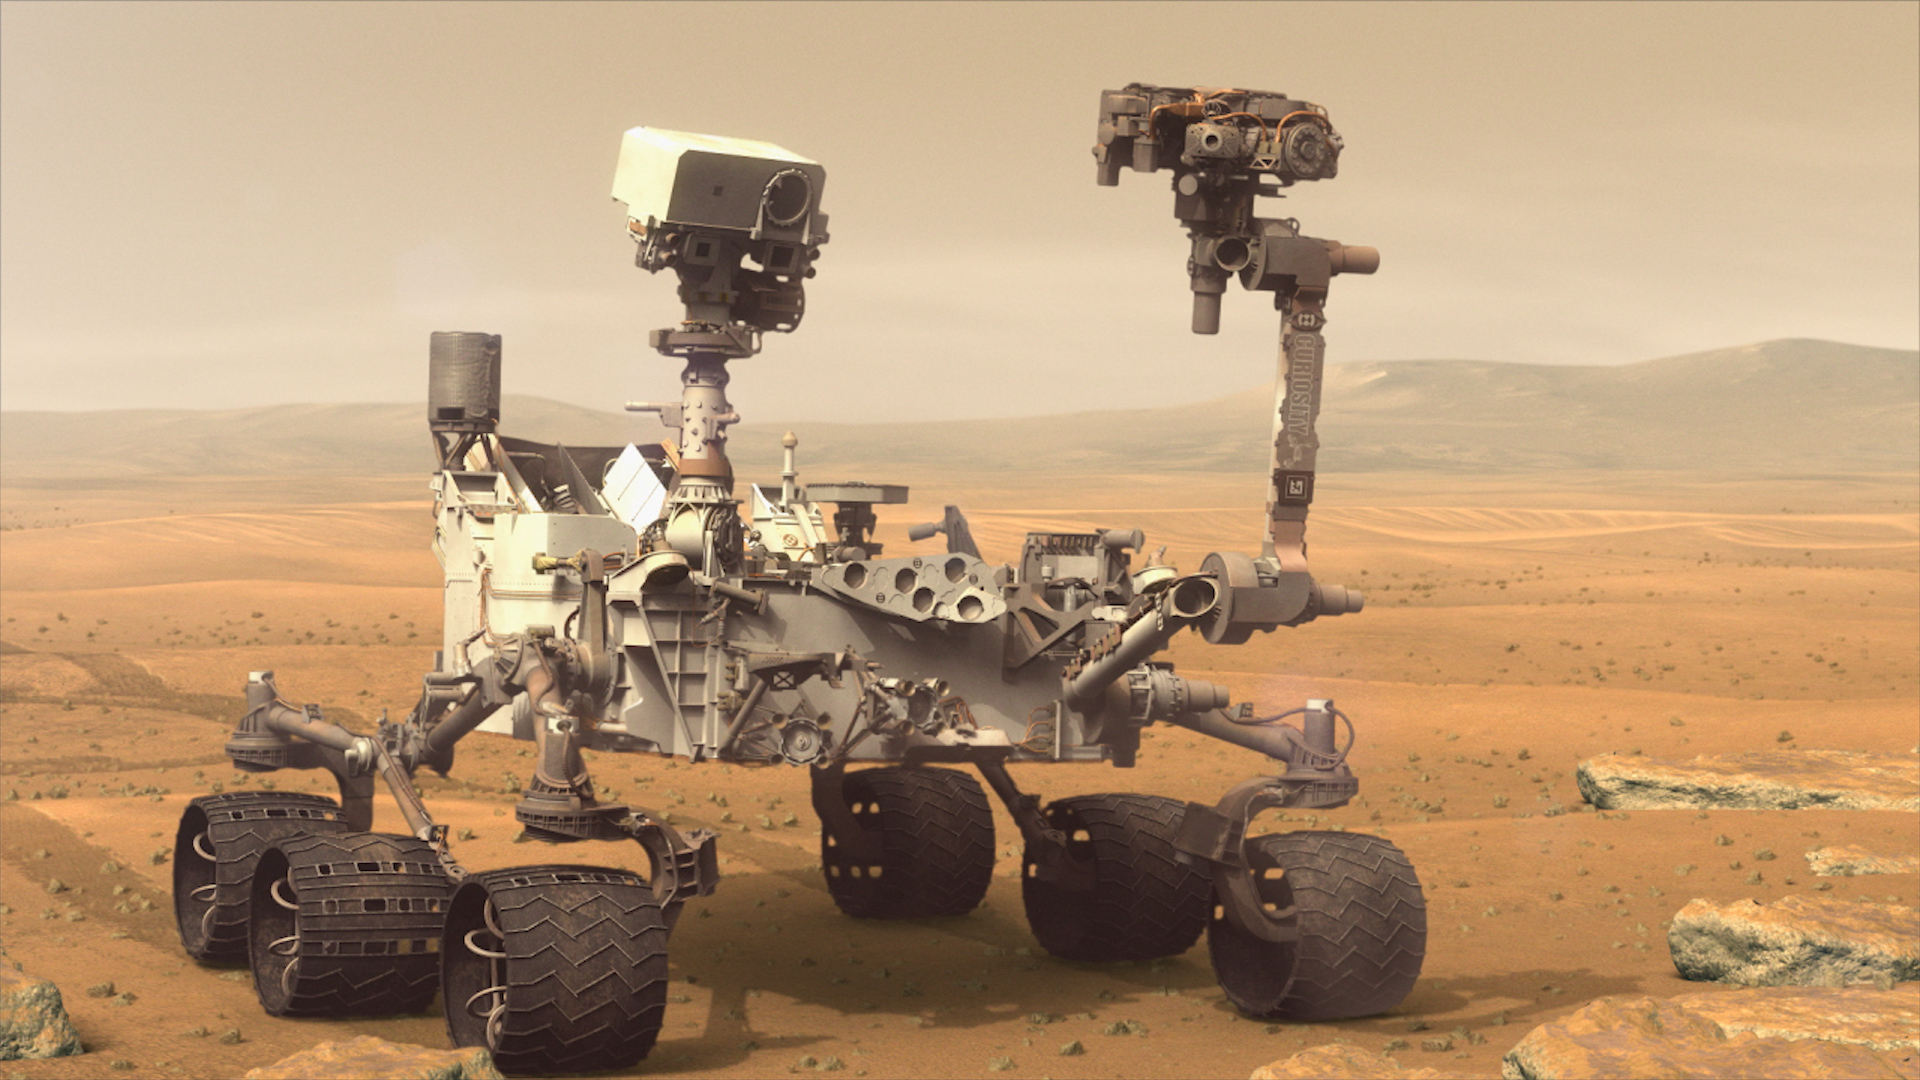 Caption: The Curiosity rover on Mars., Credit: NASA